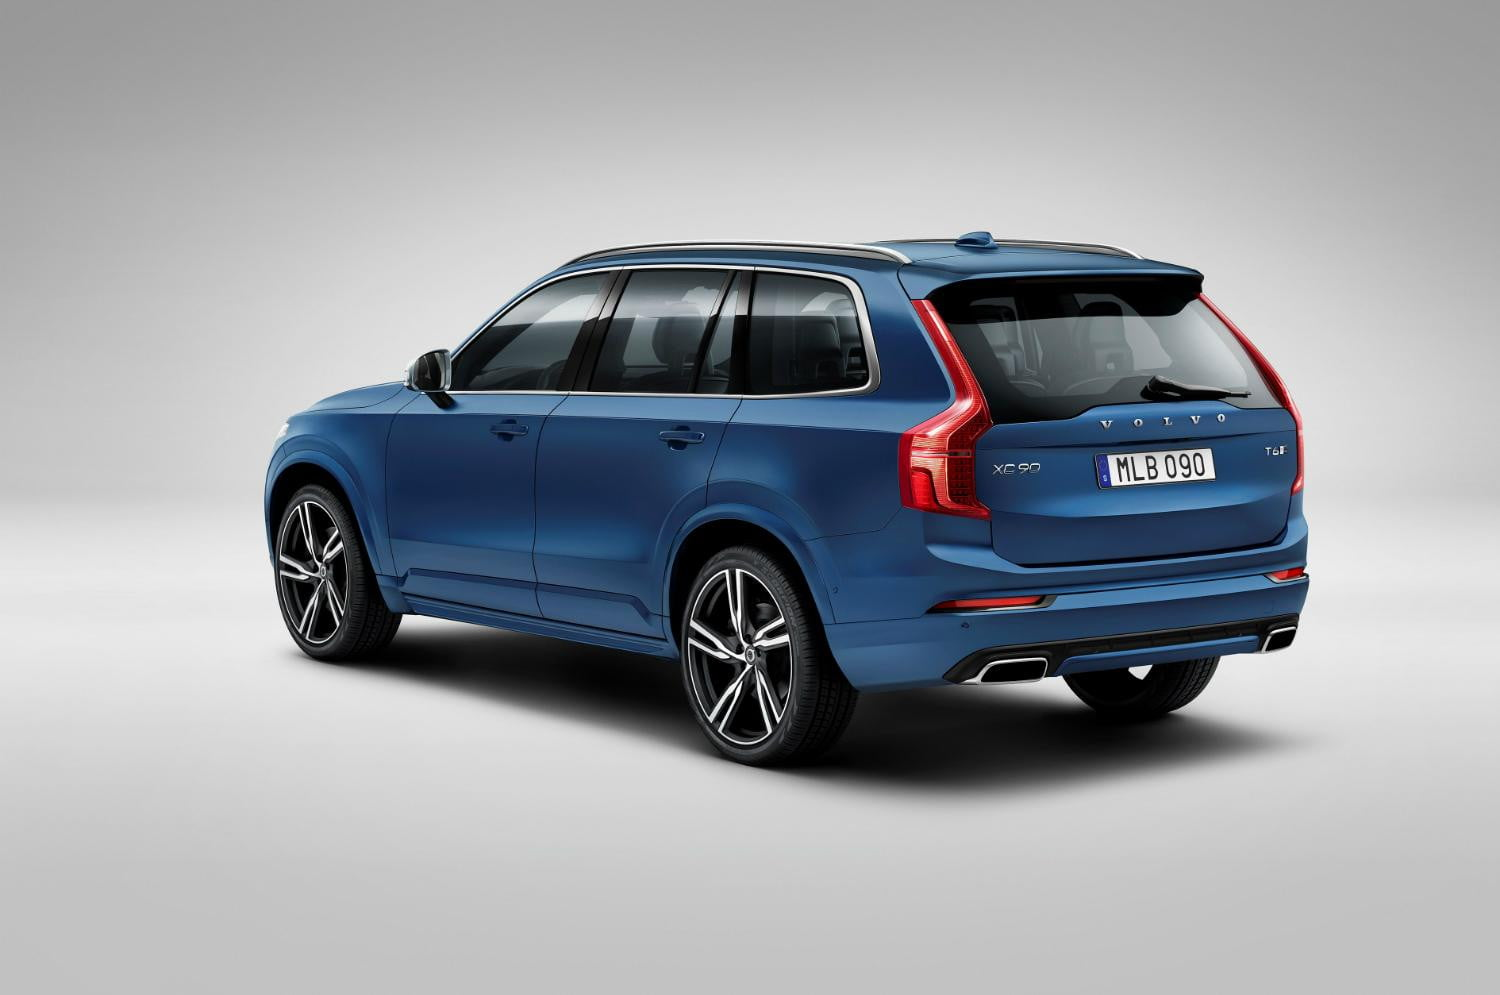 together with volvo xc90 - photo #7